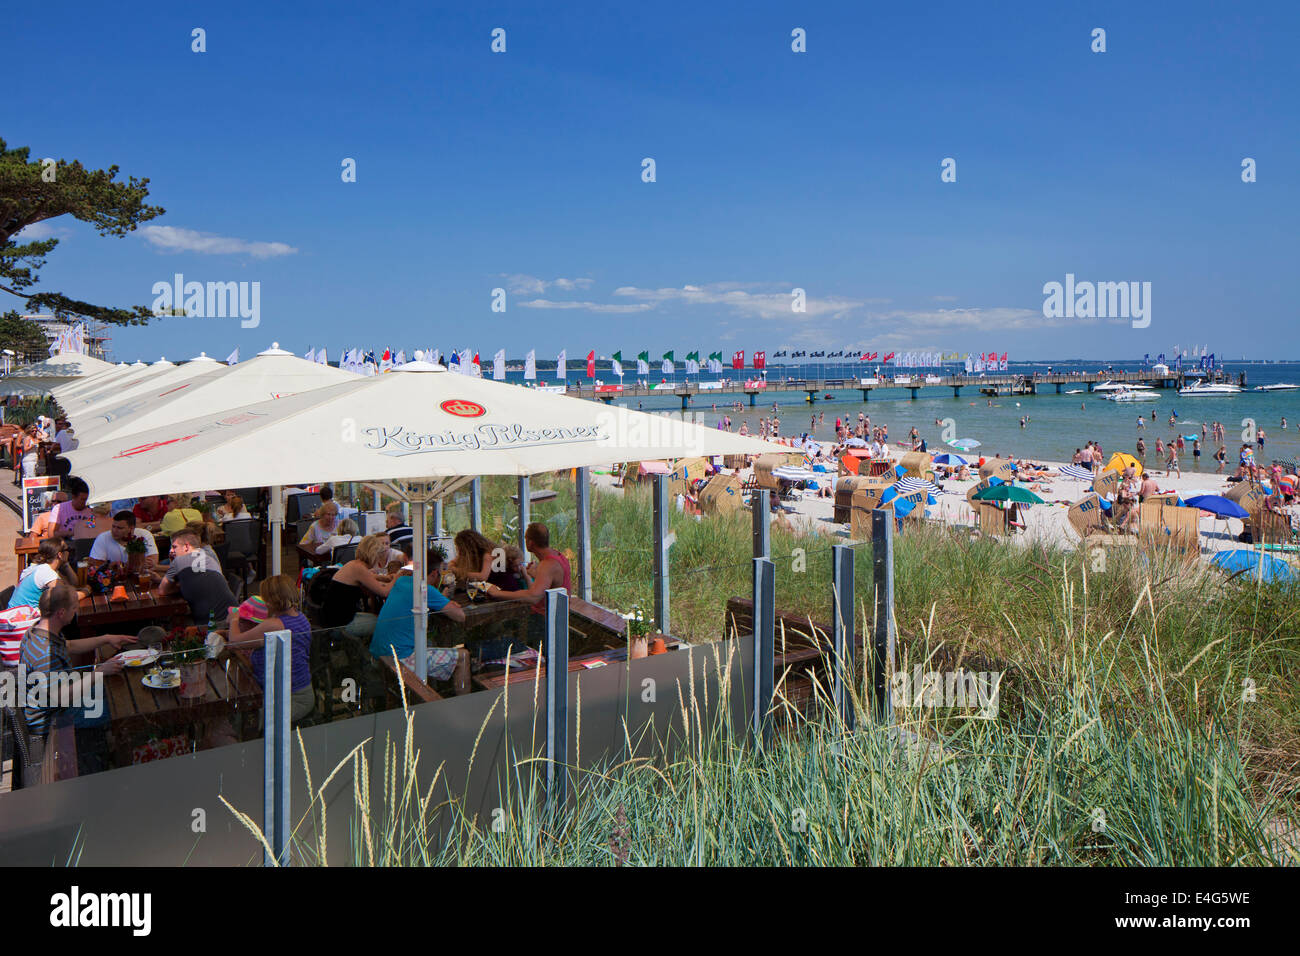 Café at Scharbeutz, seaside resort along the Baltic Sea, Ostholstein, Schleswig-Holstein, Germany - Stock Image